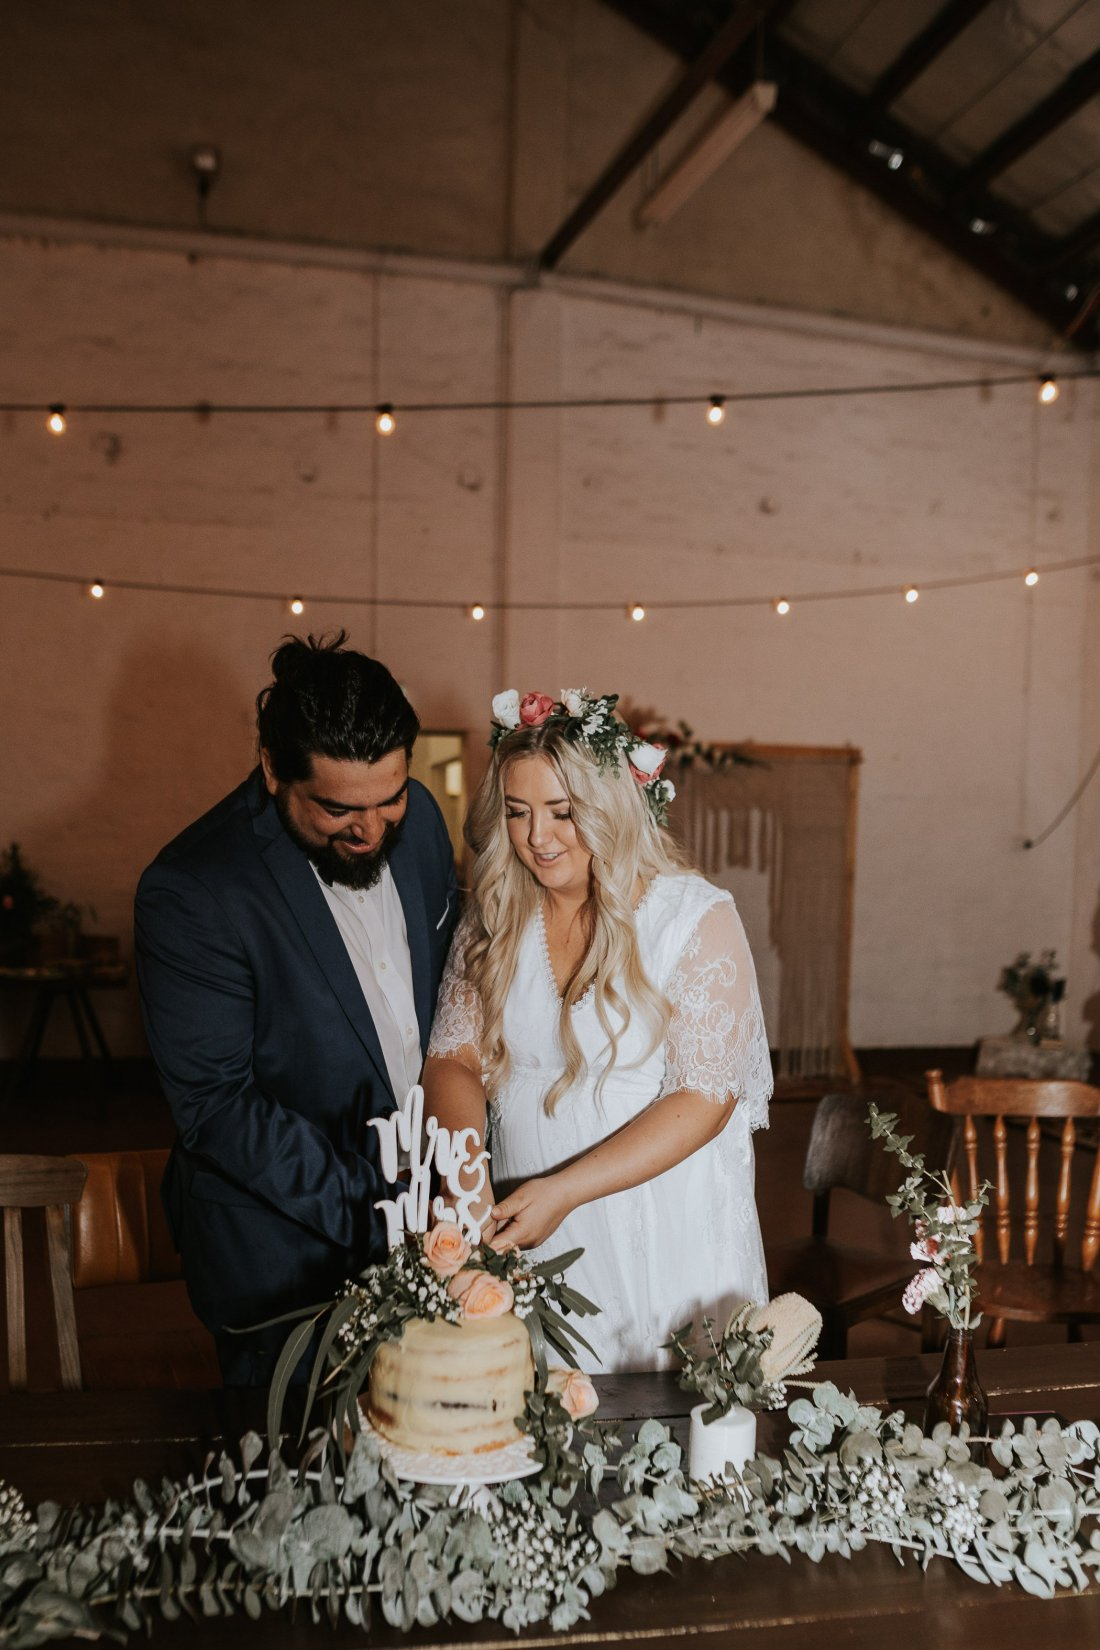 Ebony Blush Photography | Perth wedding Photographer | Perth City Farm Wedding | Imogen + Tristian188